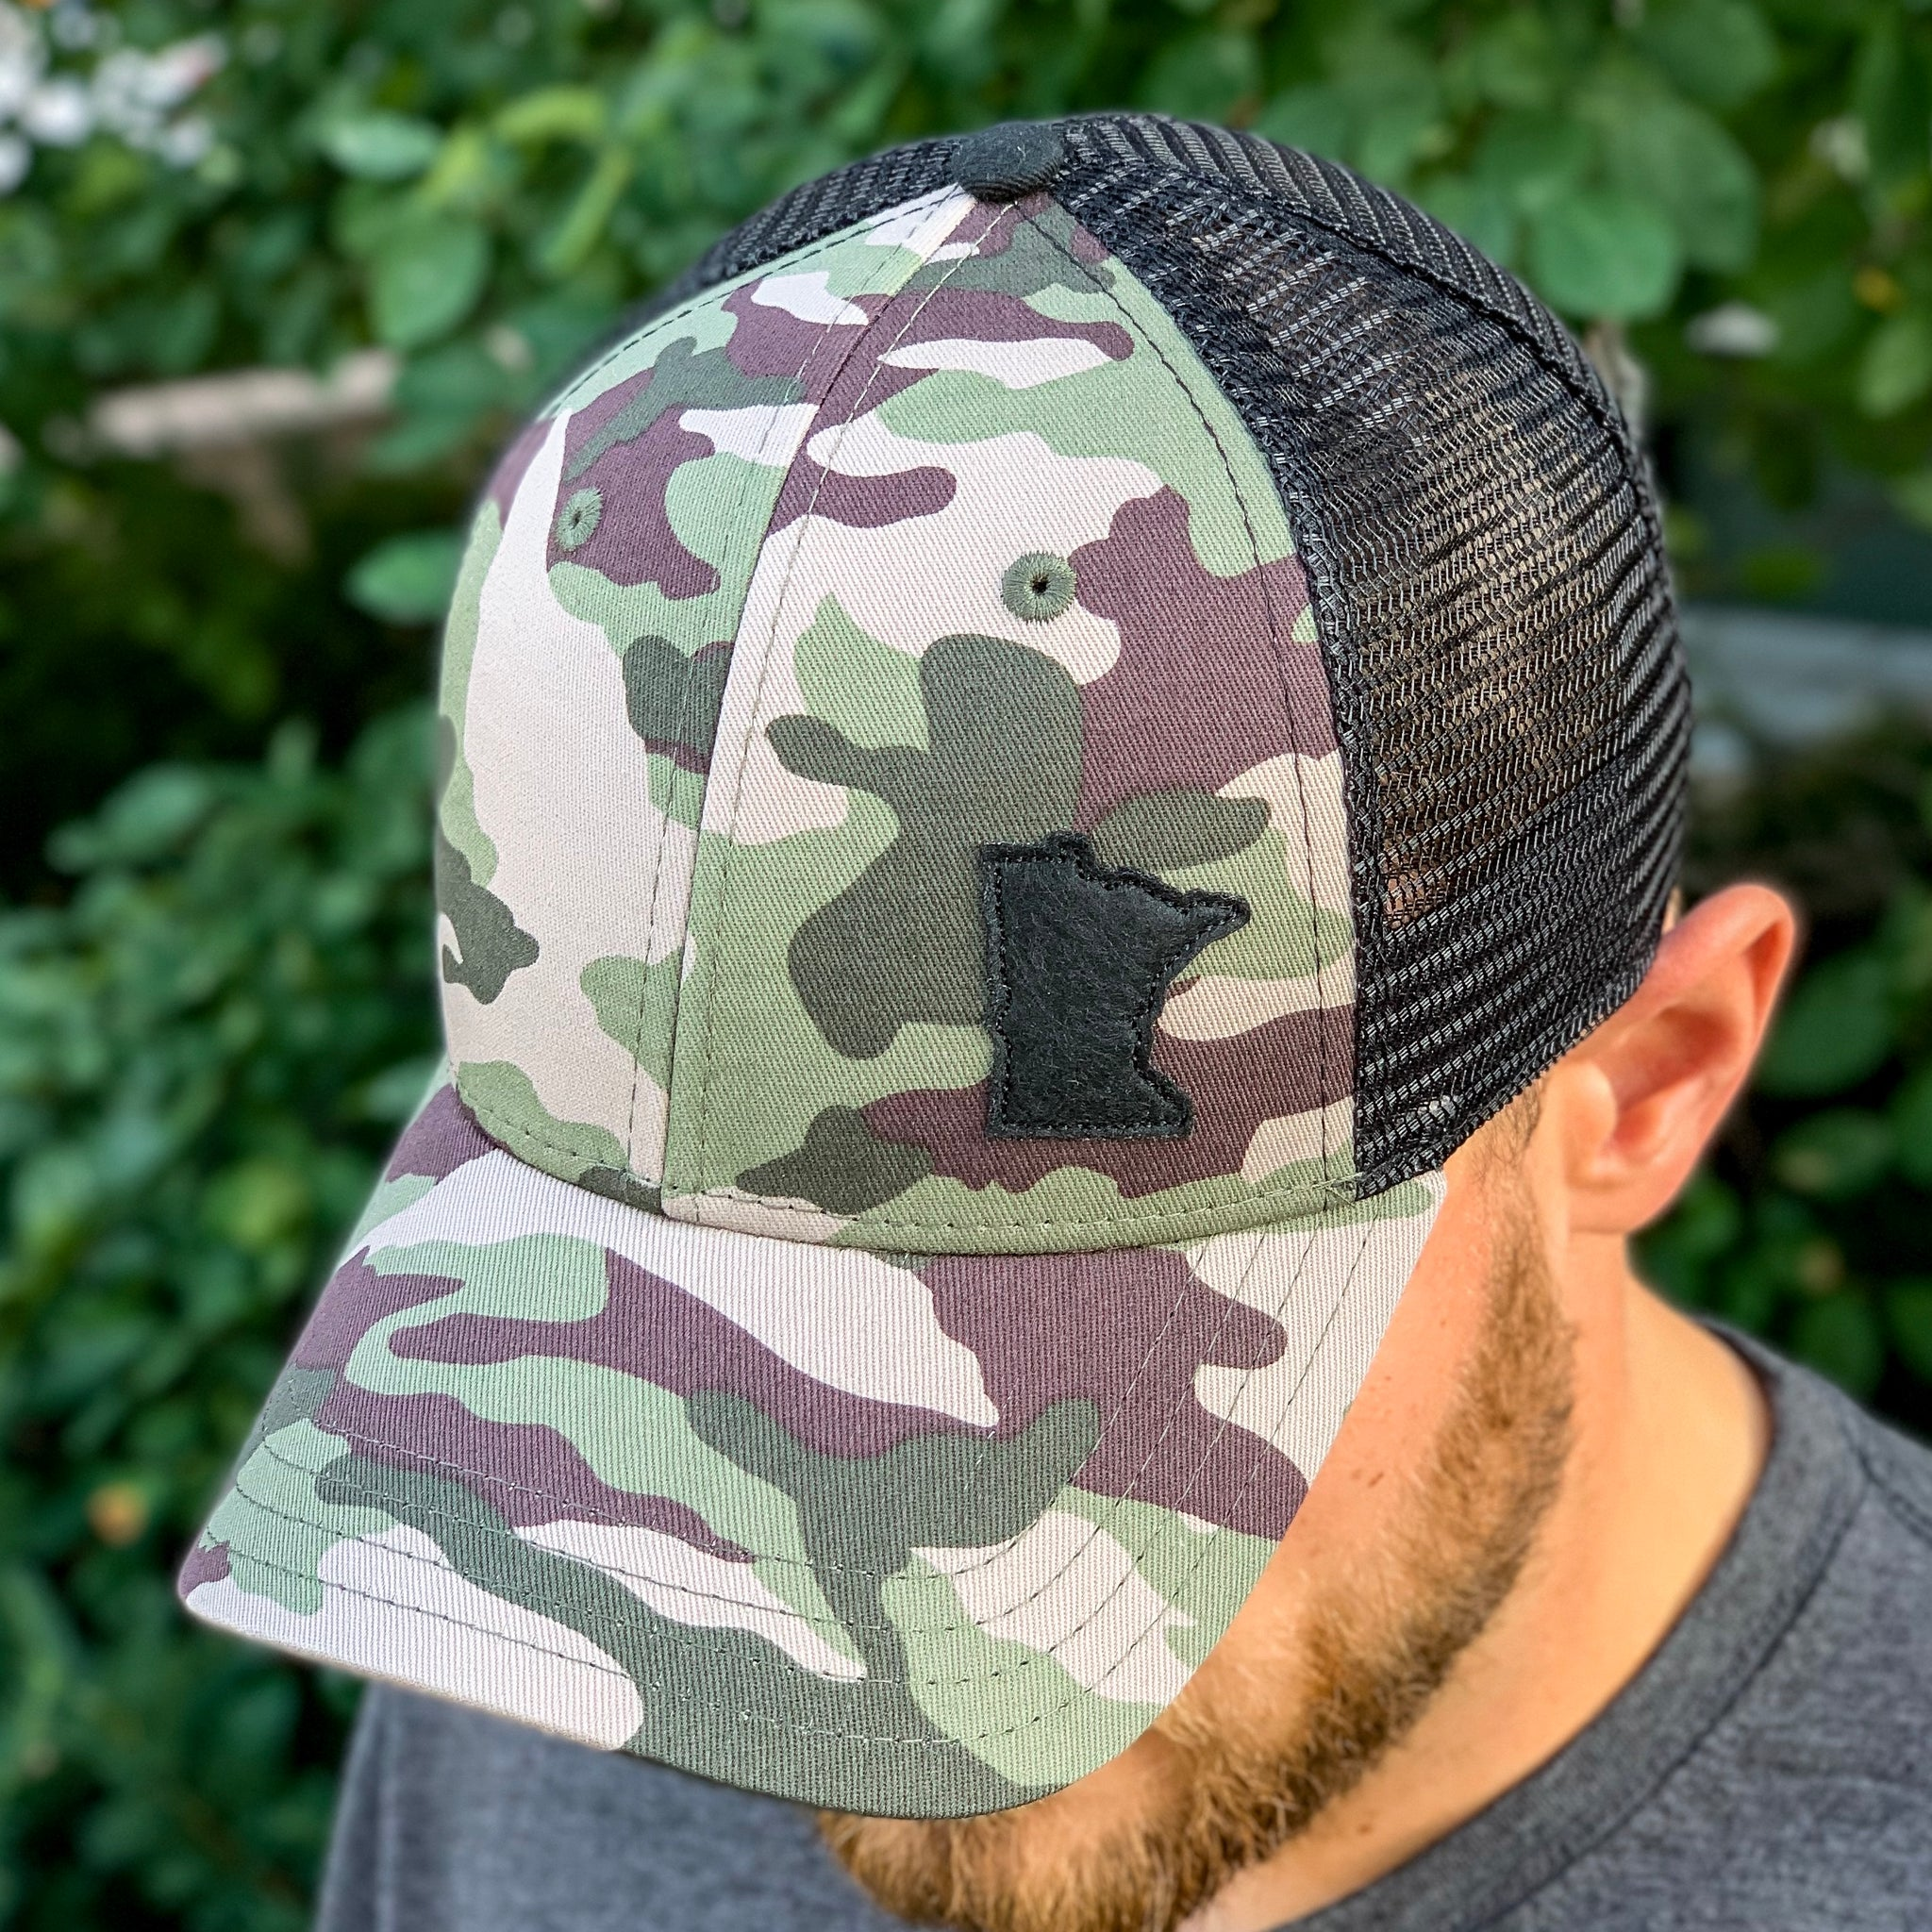 Roots (Camo) - Beauty Status Hockey Co.